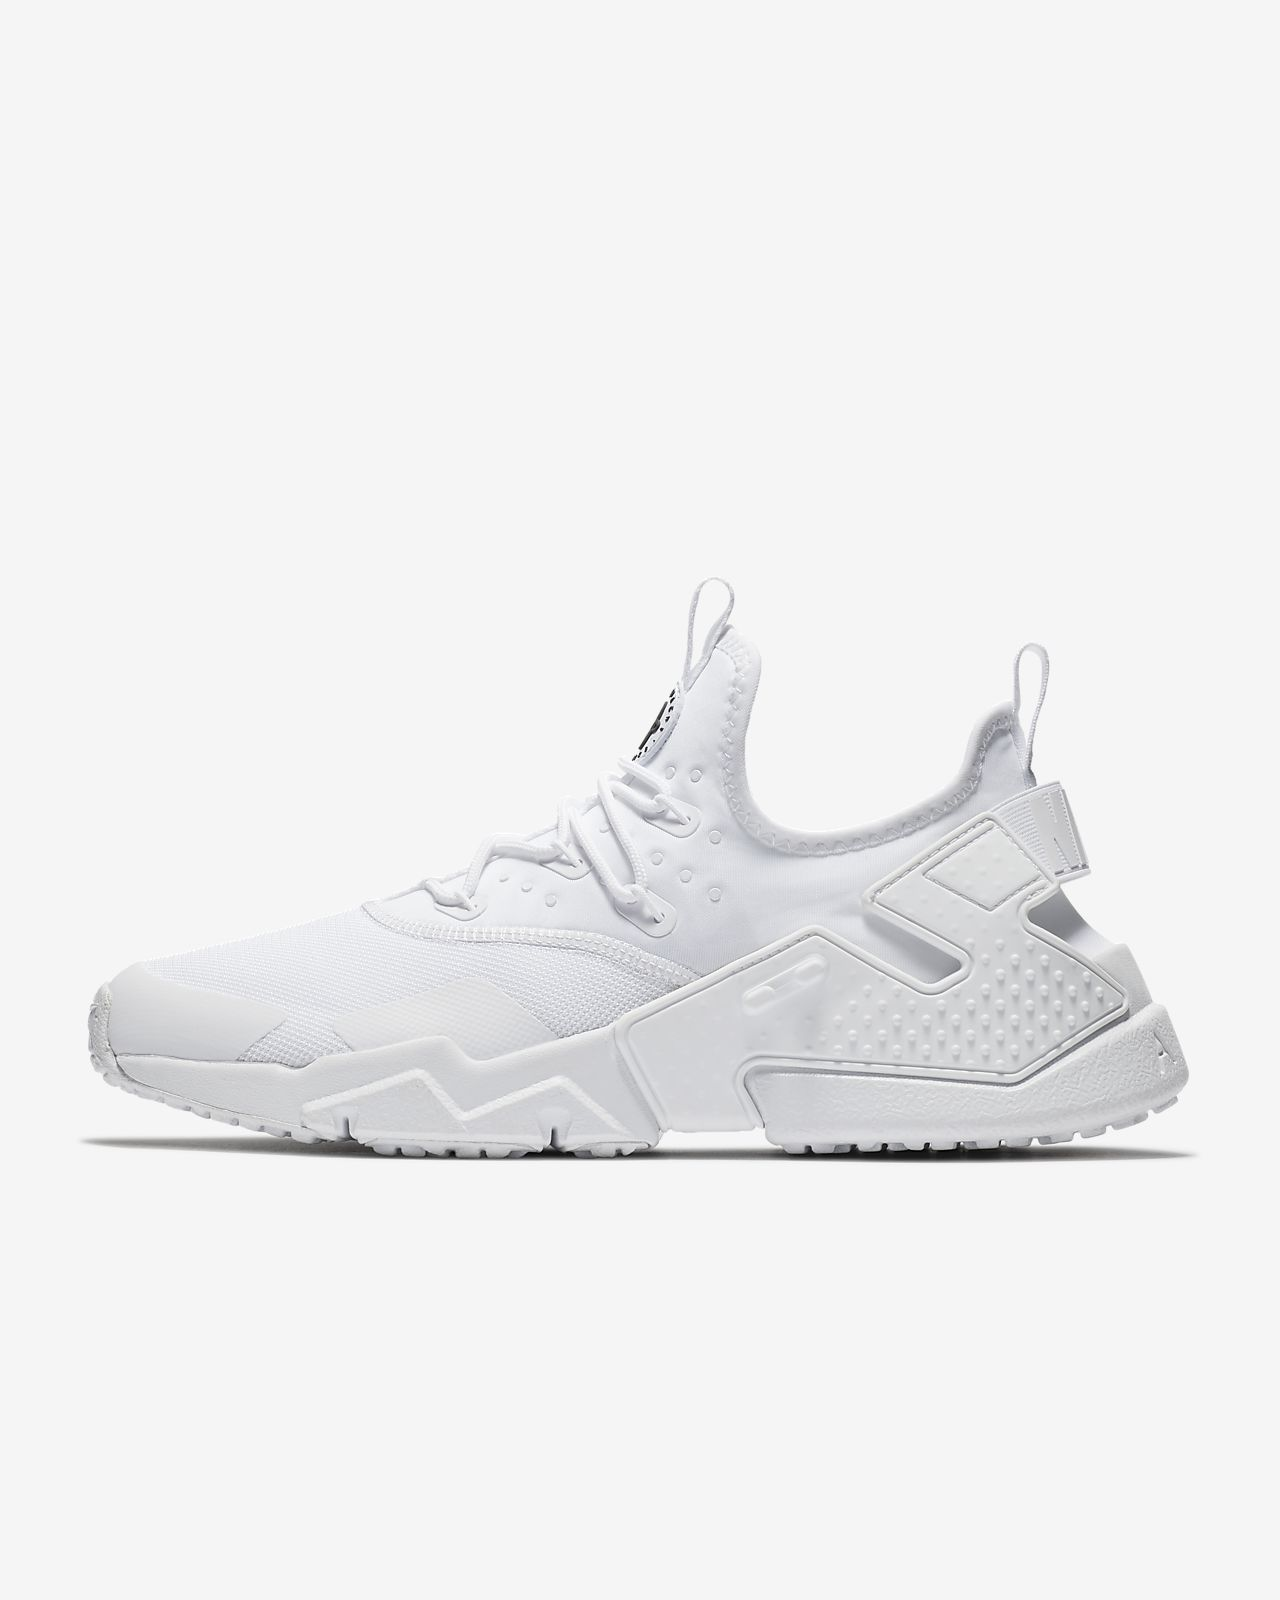 84d07e7f37cb Nike Air Huarache Drift Men s Shoe. Nike.com